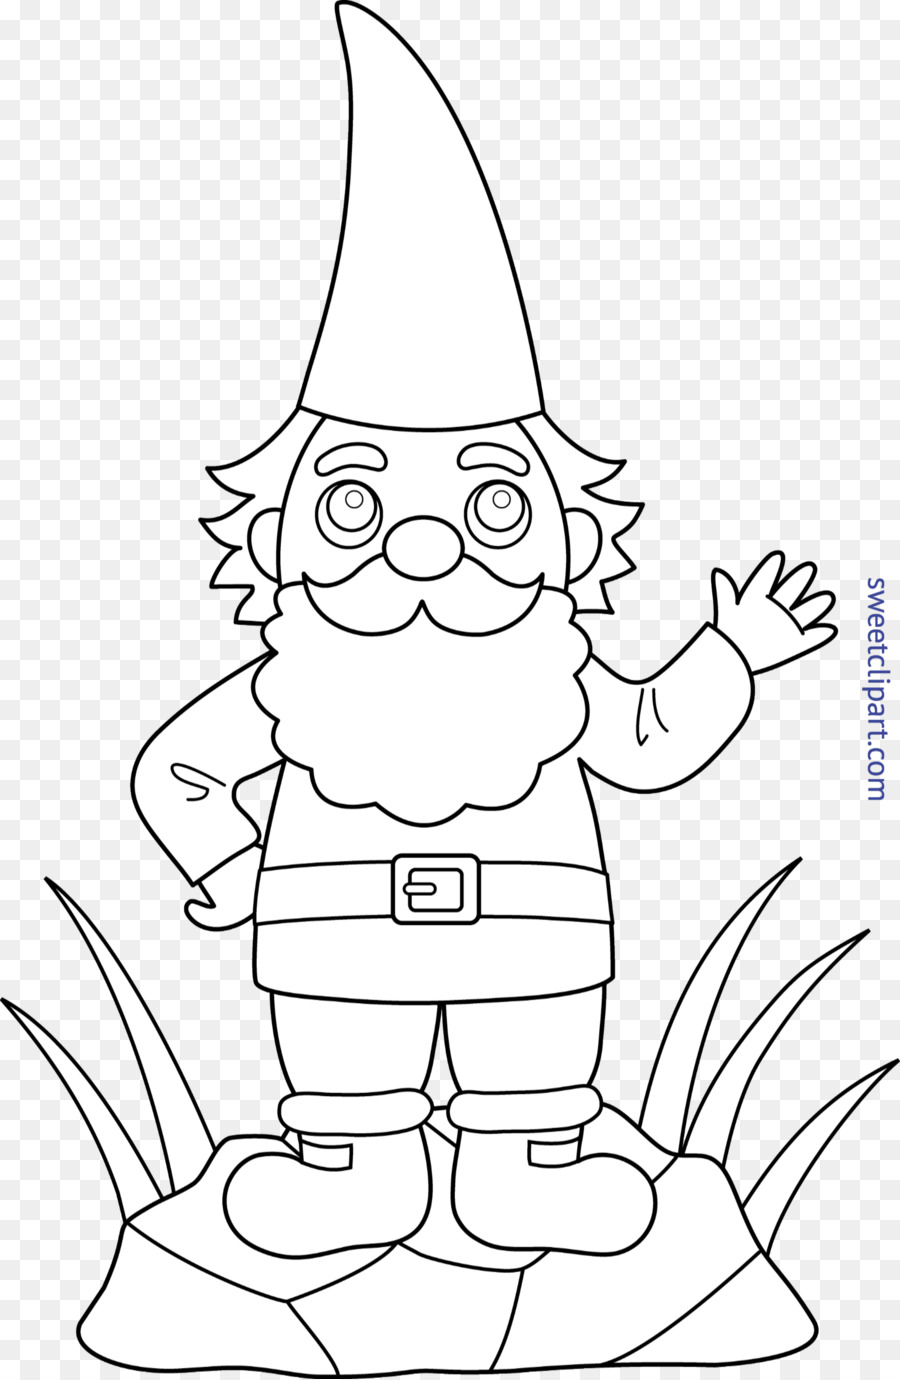 Garden Gnome Flower Drawing Coloring Book